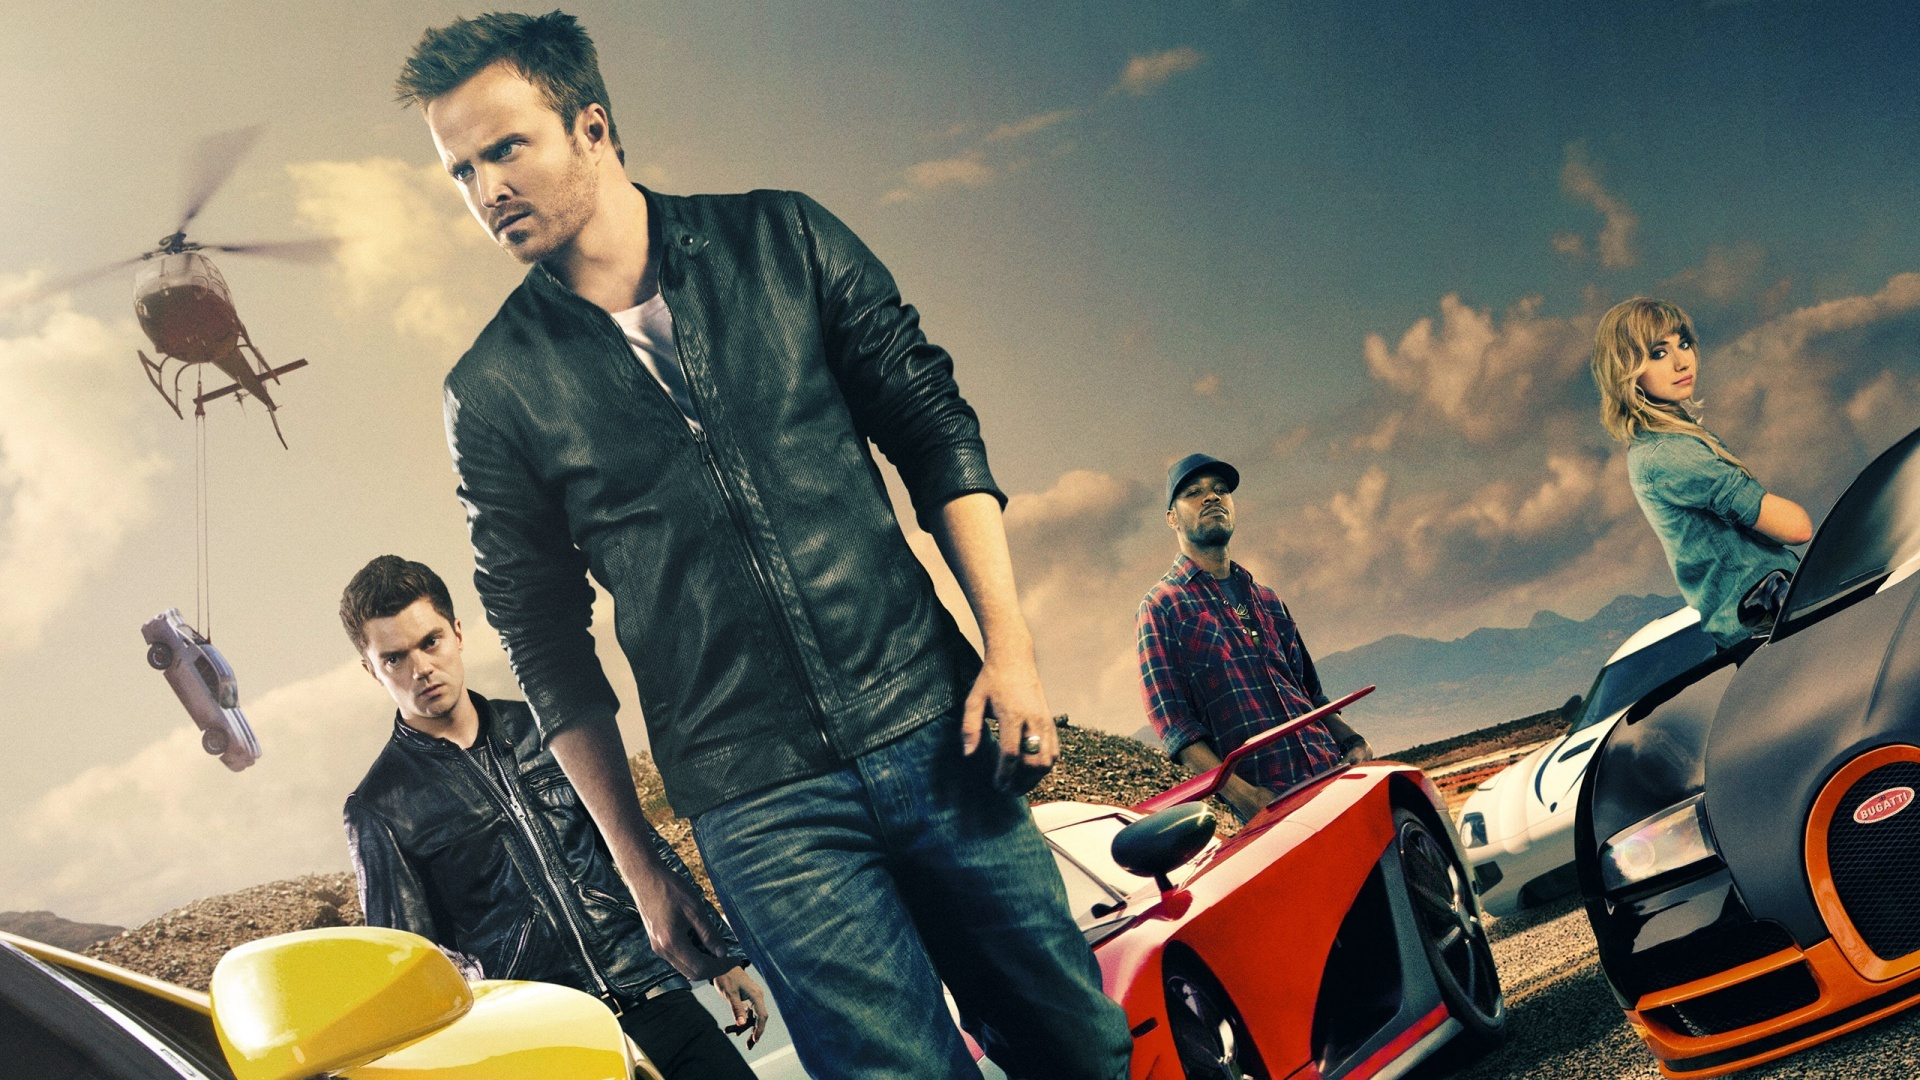 Need For Speed 2014 Hollywood Movie  1920 x 1080  Download  Close